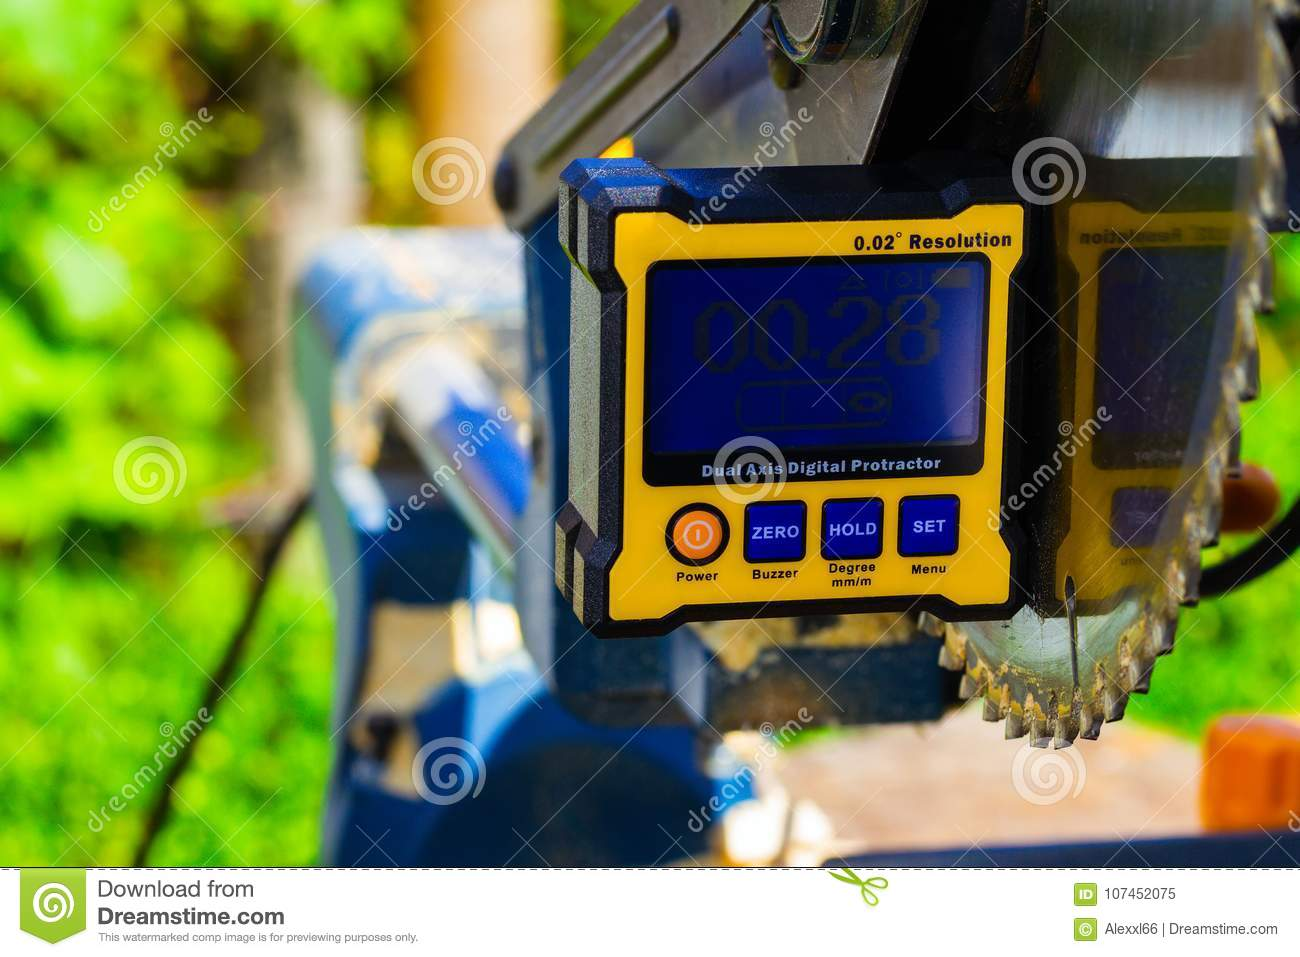 Digital protractor and circular saw blade stock image image of download digital protractor and circular saw blade stock image image of electronic circular greentooth Images